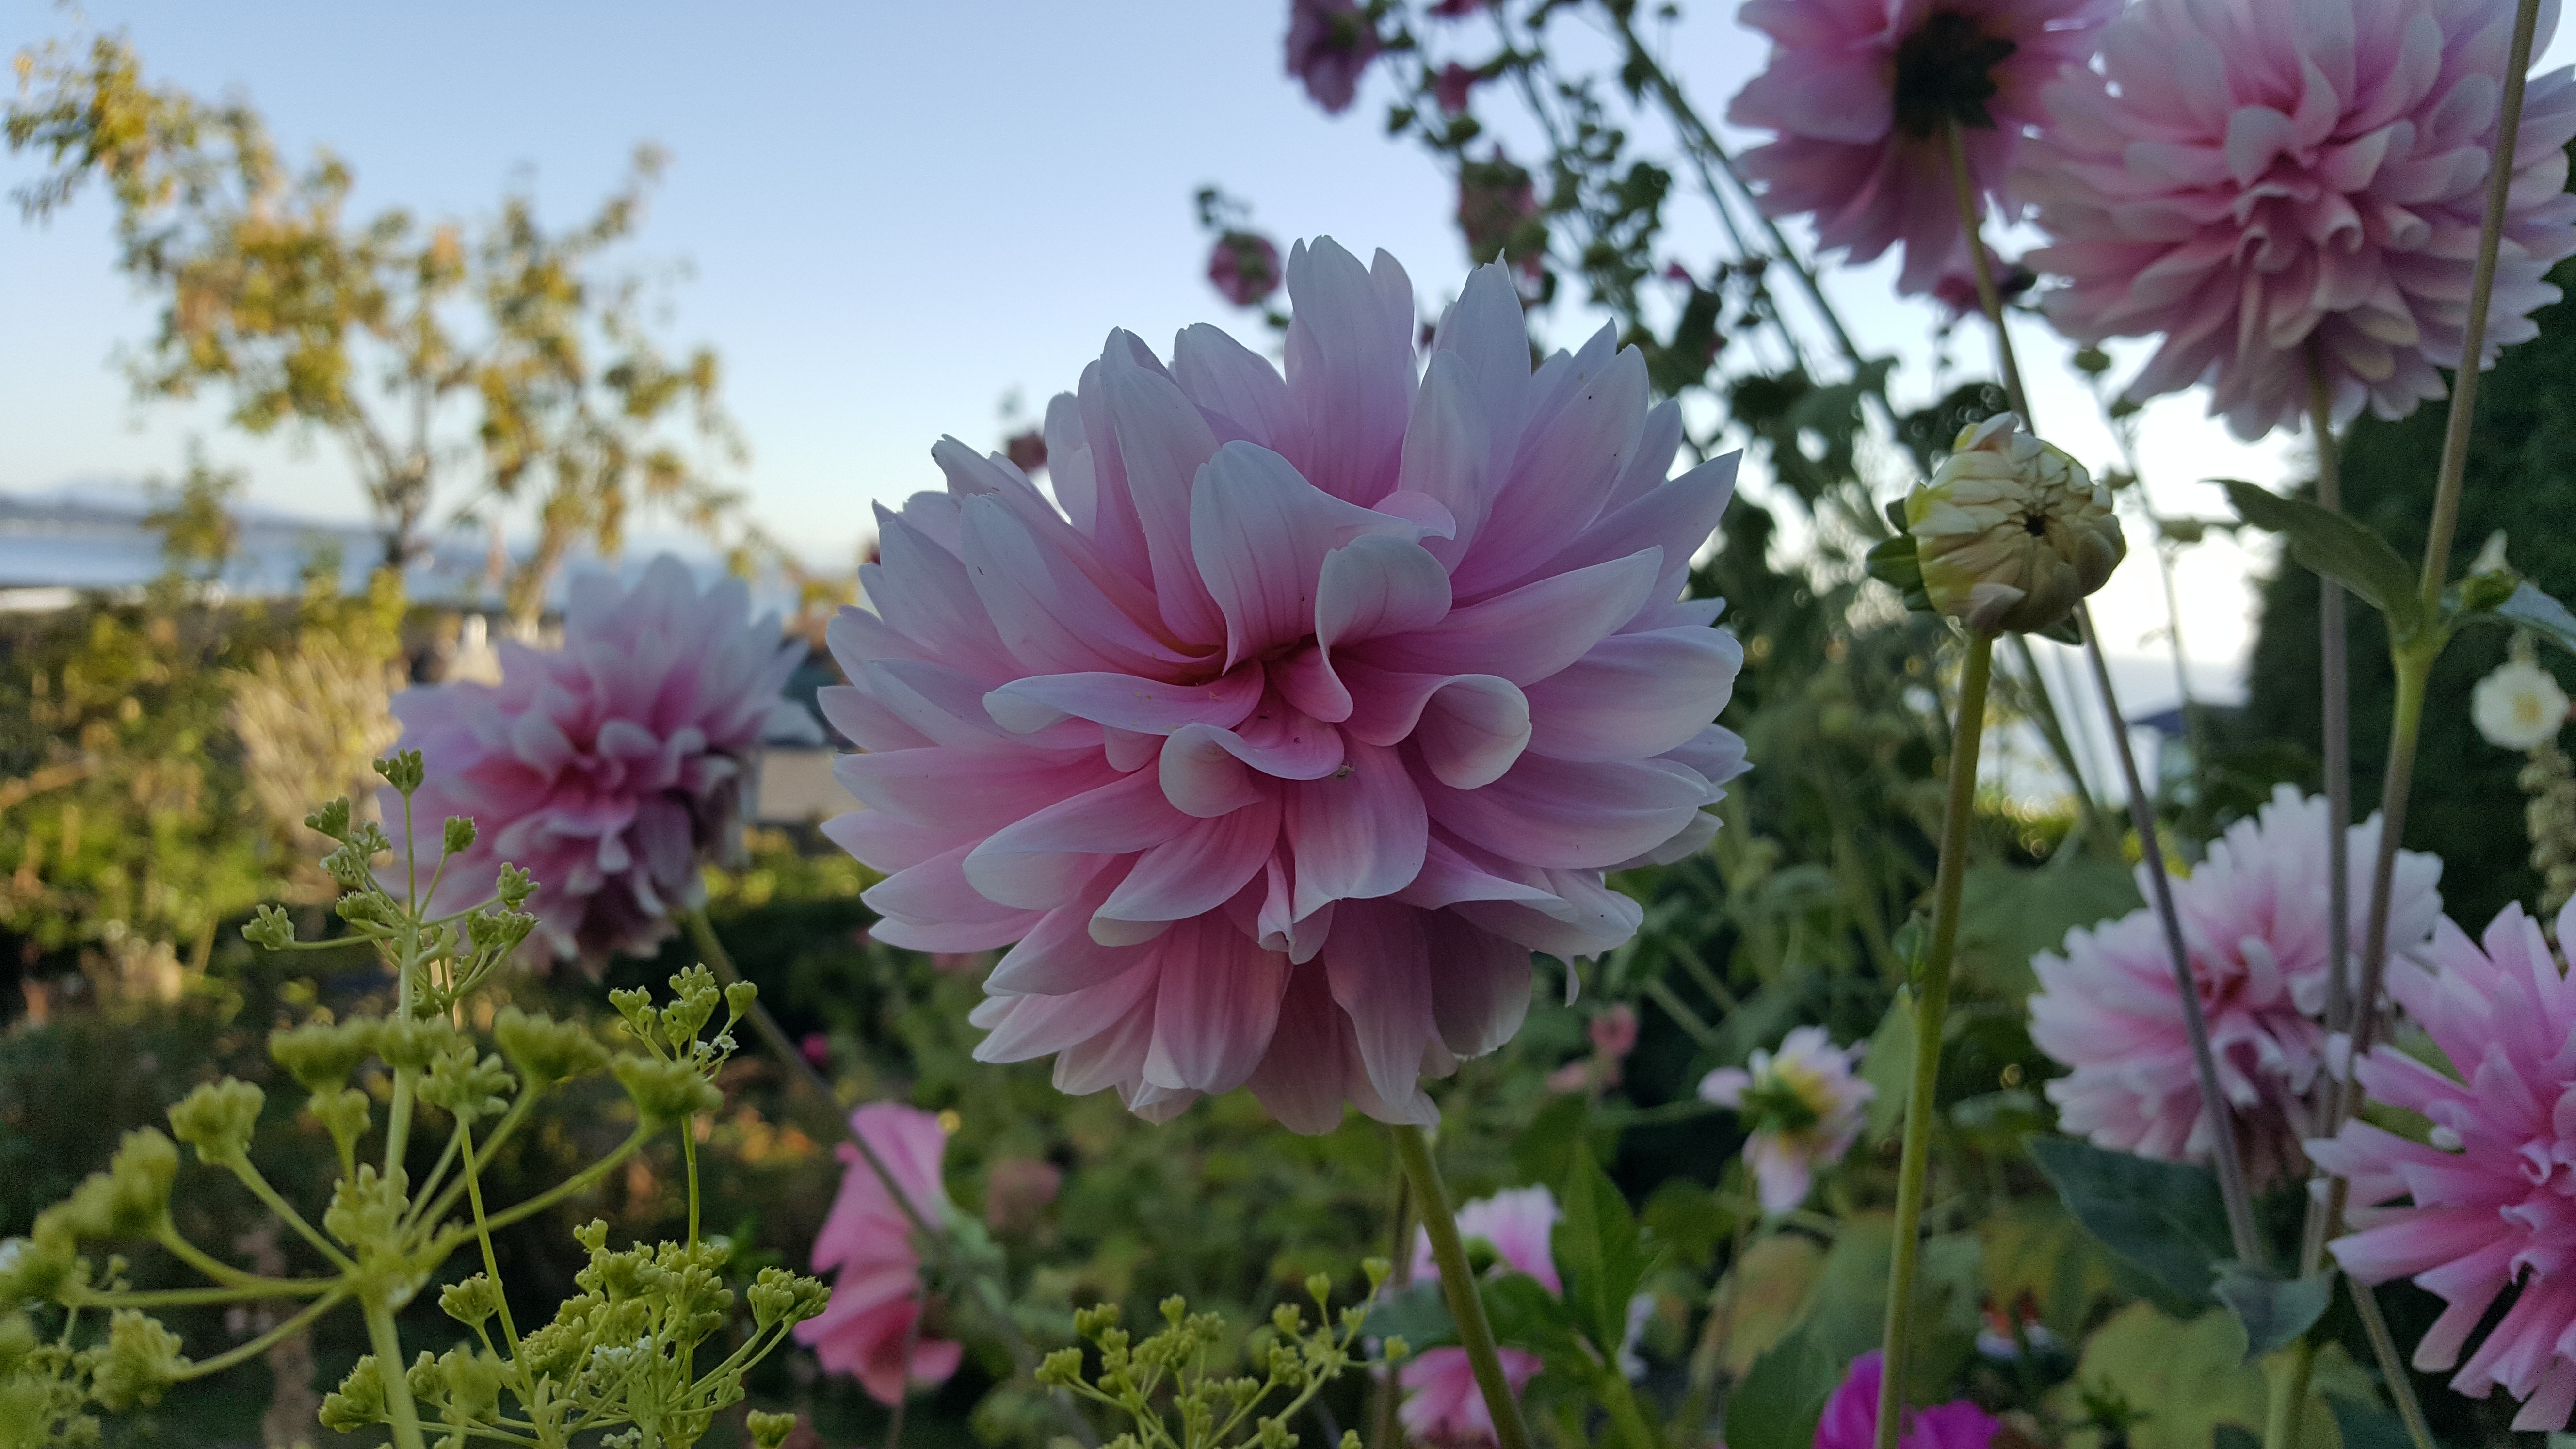 Flowers gardeners for hire dahlia garden flower summer pink mightylinksfo